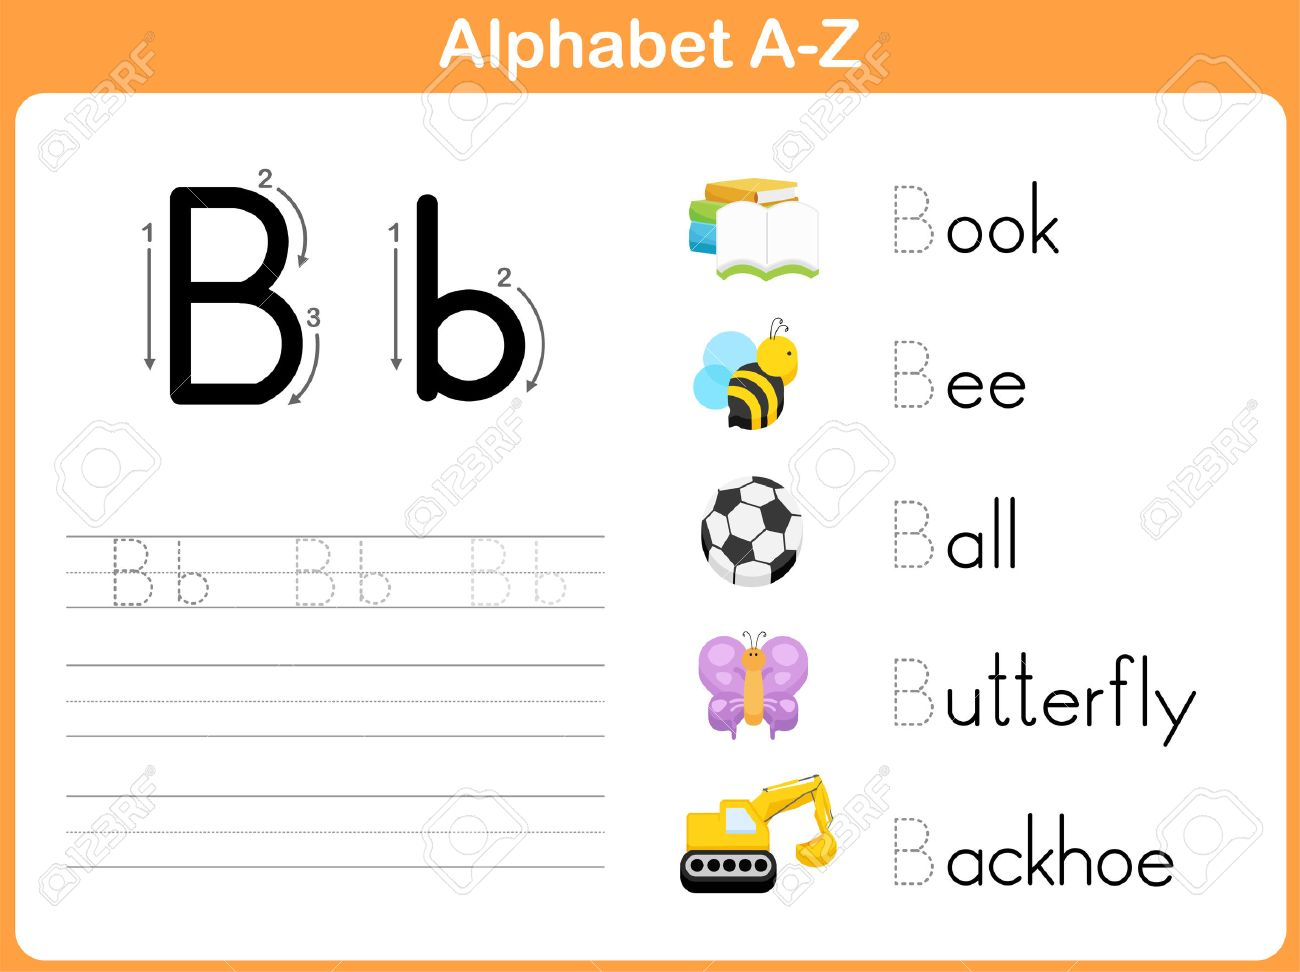 Alphabet Tracing Worksheet: Writing A-Z for Alphabet Writing Worksheets A-Z